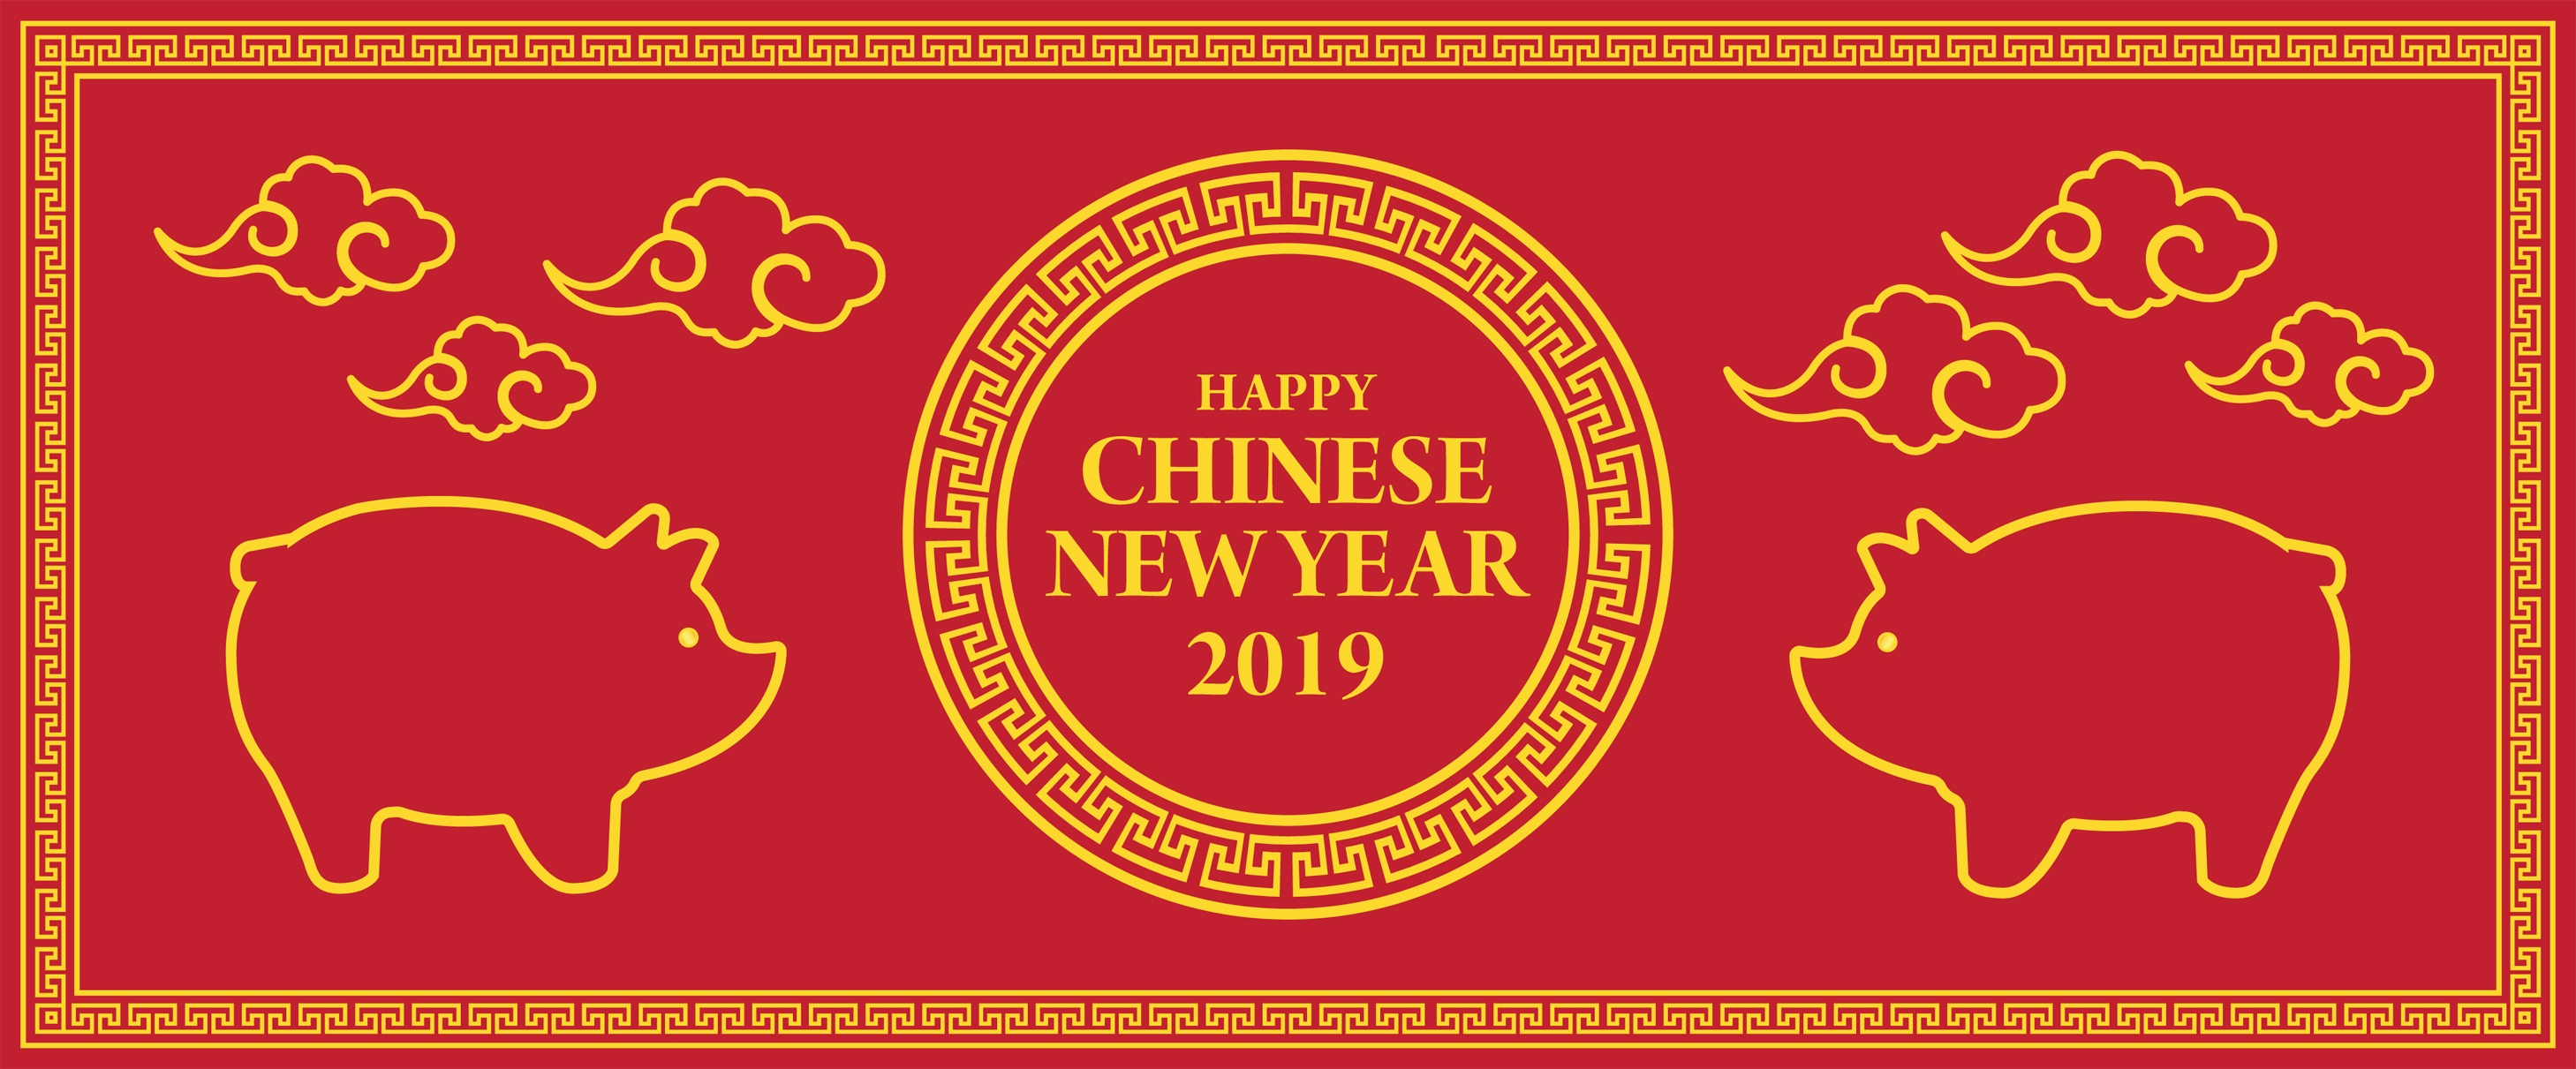 Chinese New Year Offer